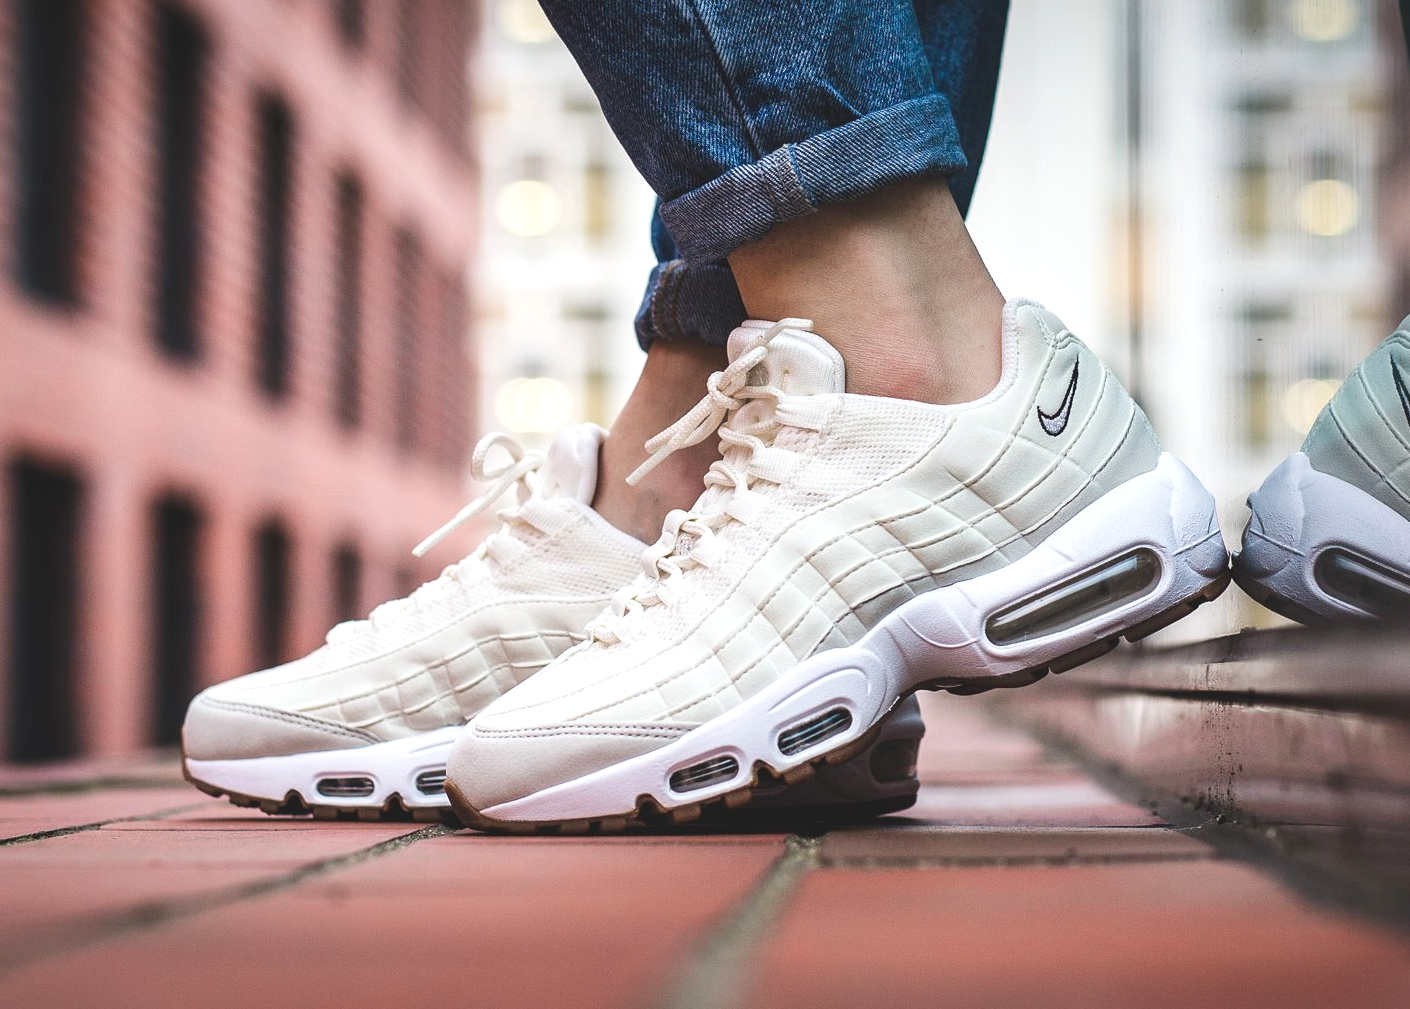 avis-basket-nike-wmns-air-max-95-light-bone-gum